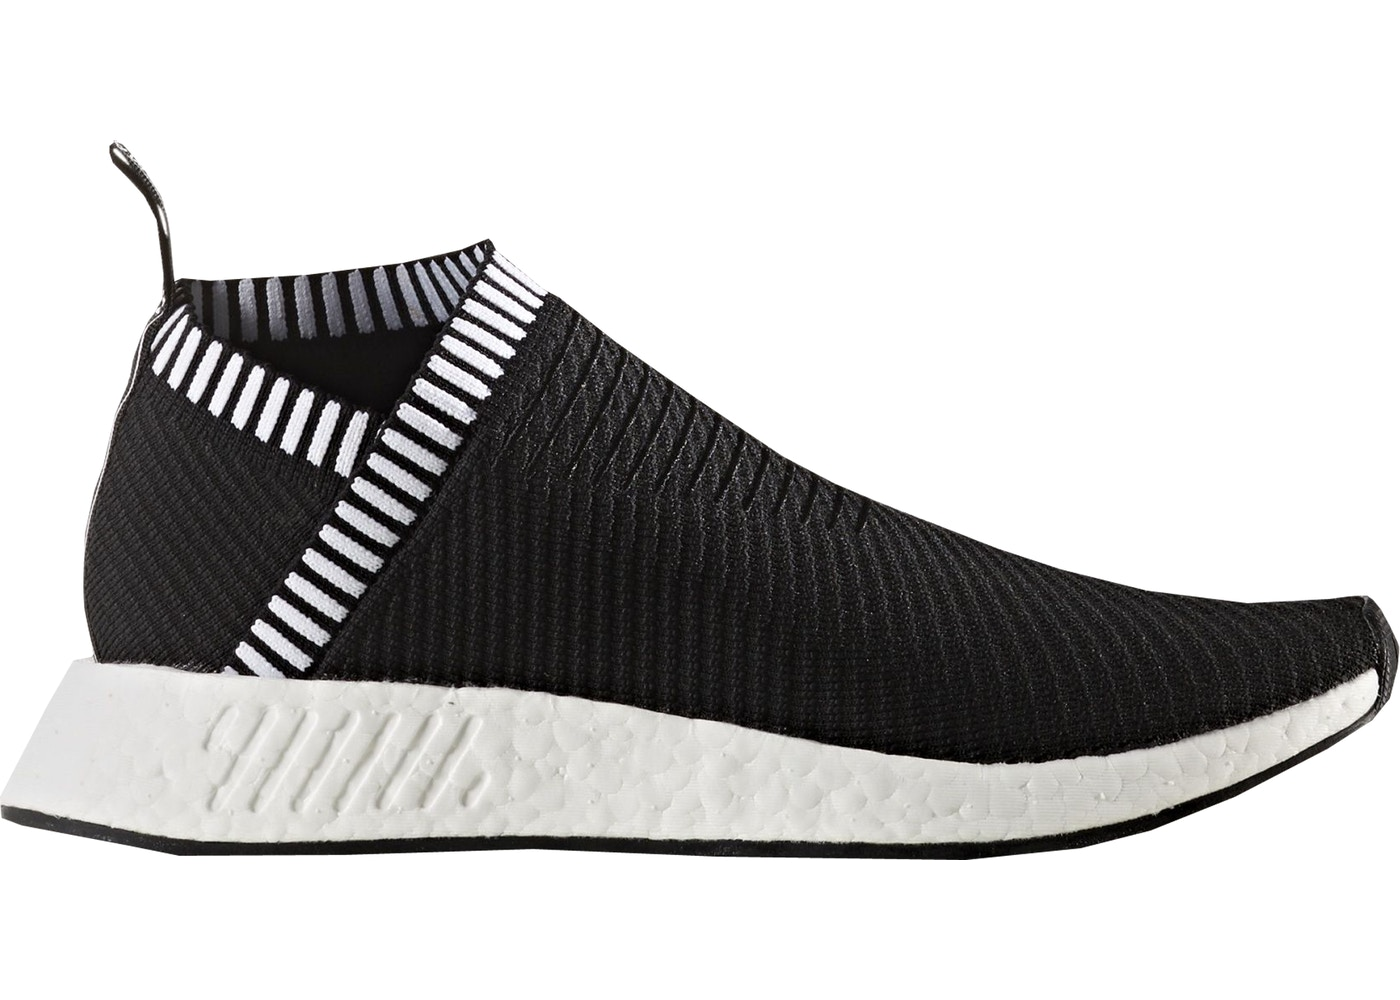 d980be8ae1e Buy adidas NMD CS2 Shoes   Deadstock Sneakers